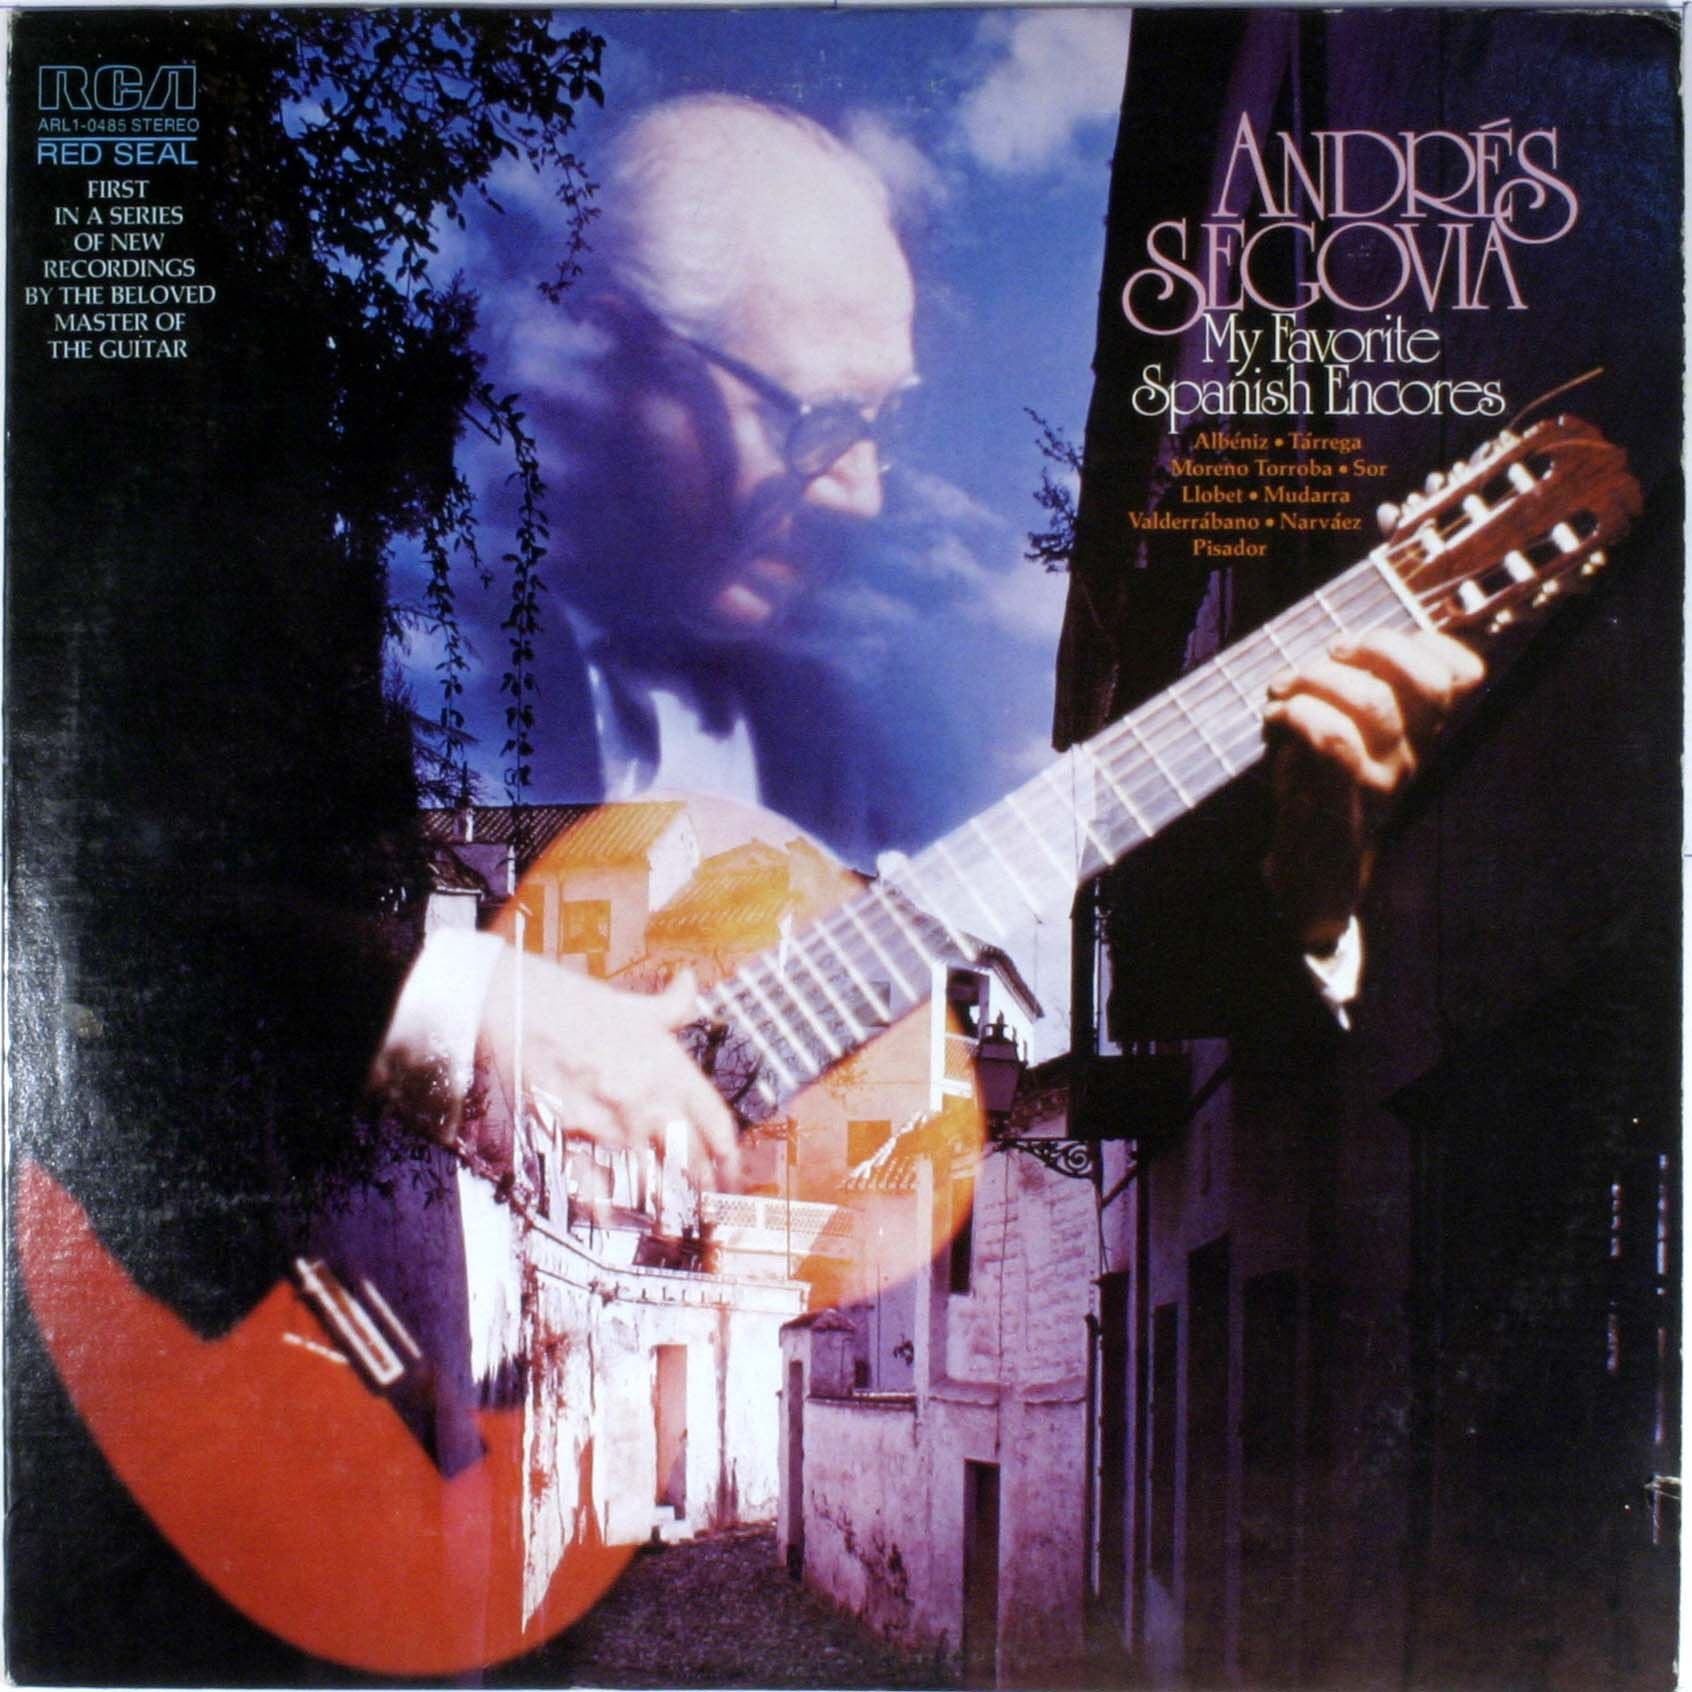 Andres Segovia - My Favorite Spanish Encores